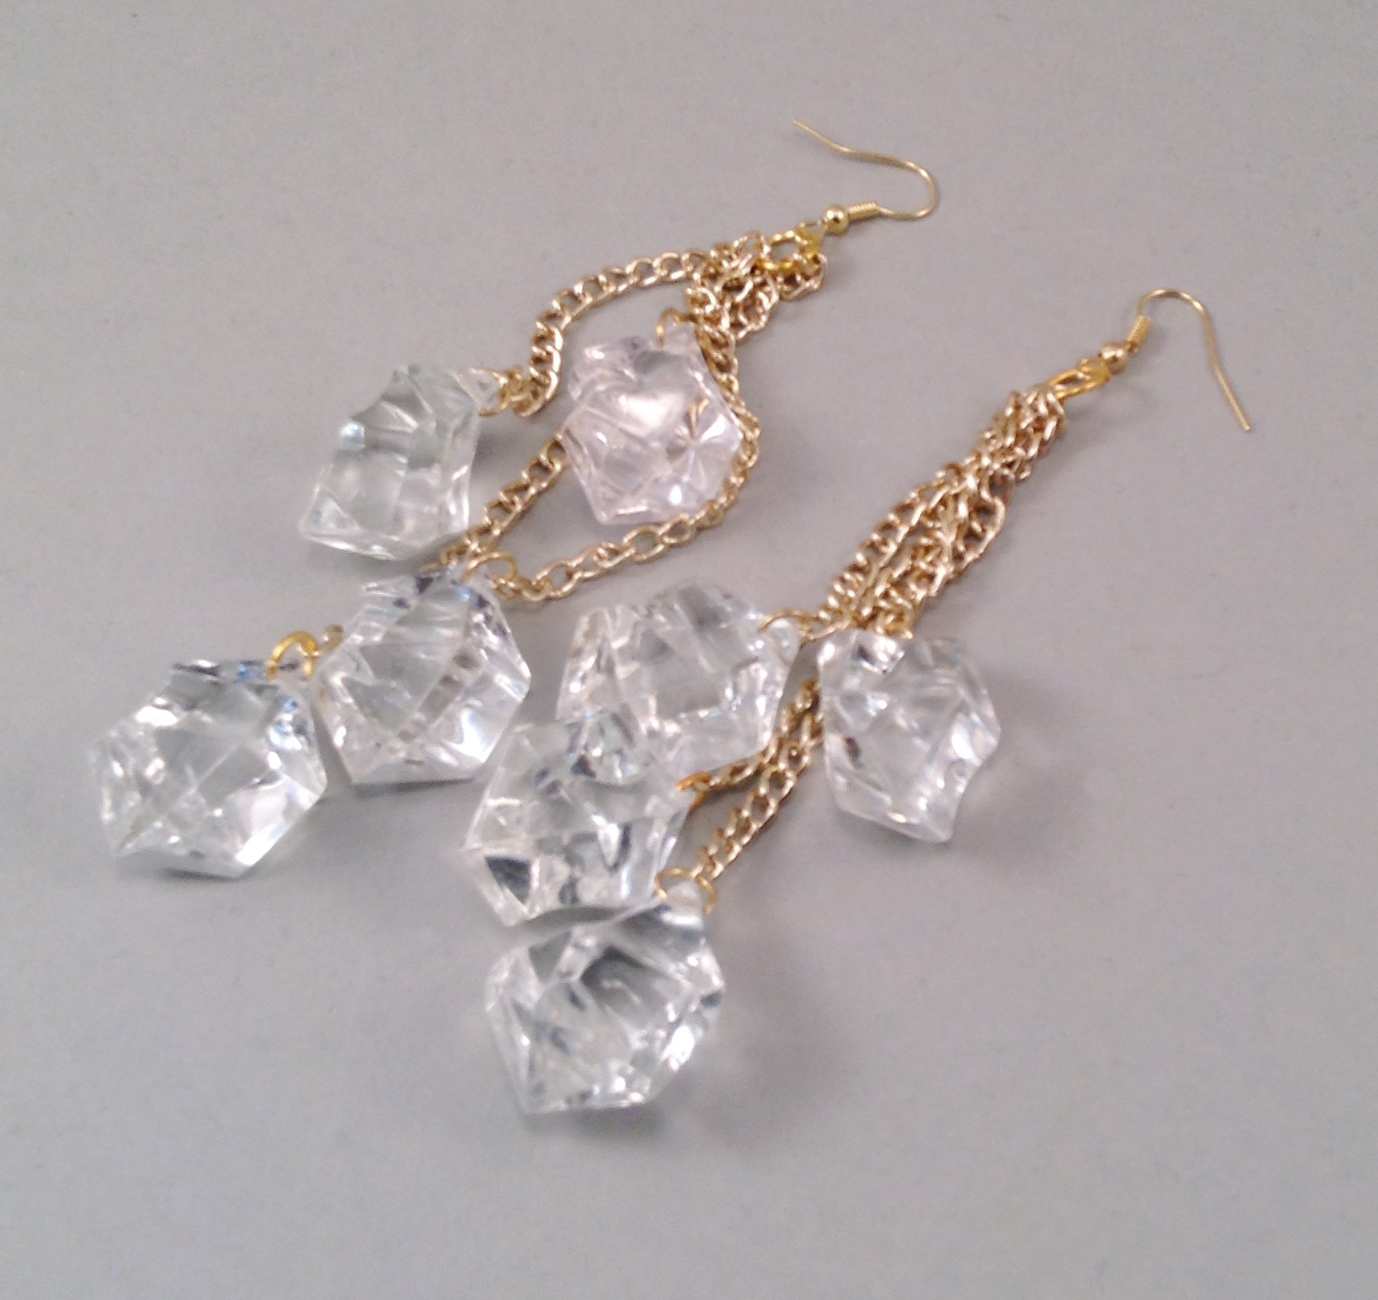 Goldice earrings